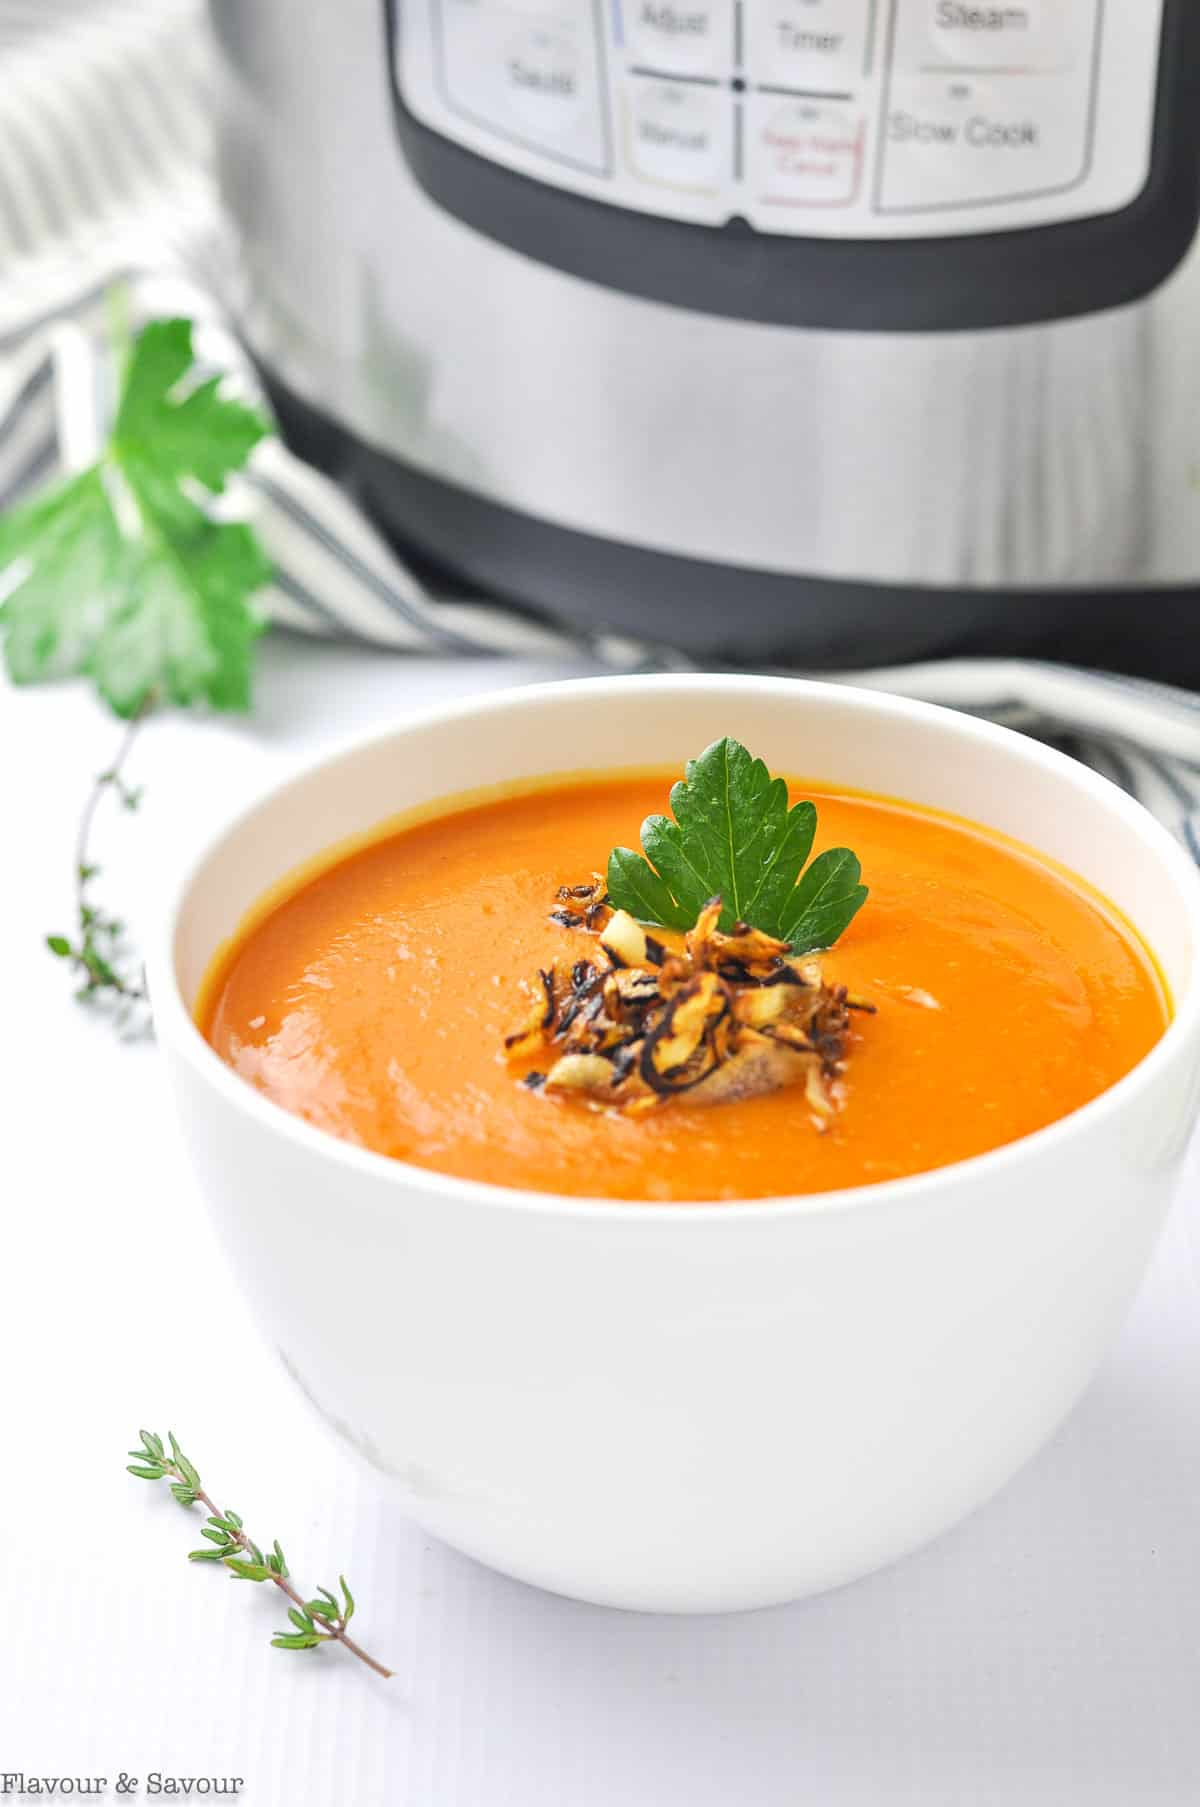 A bowl of Carrot Ginger Soup with garnishes.